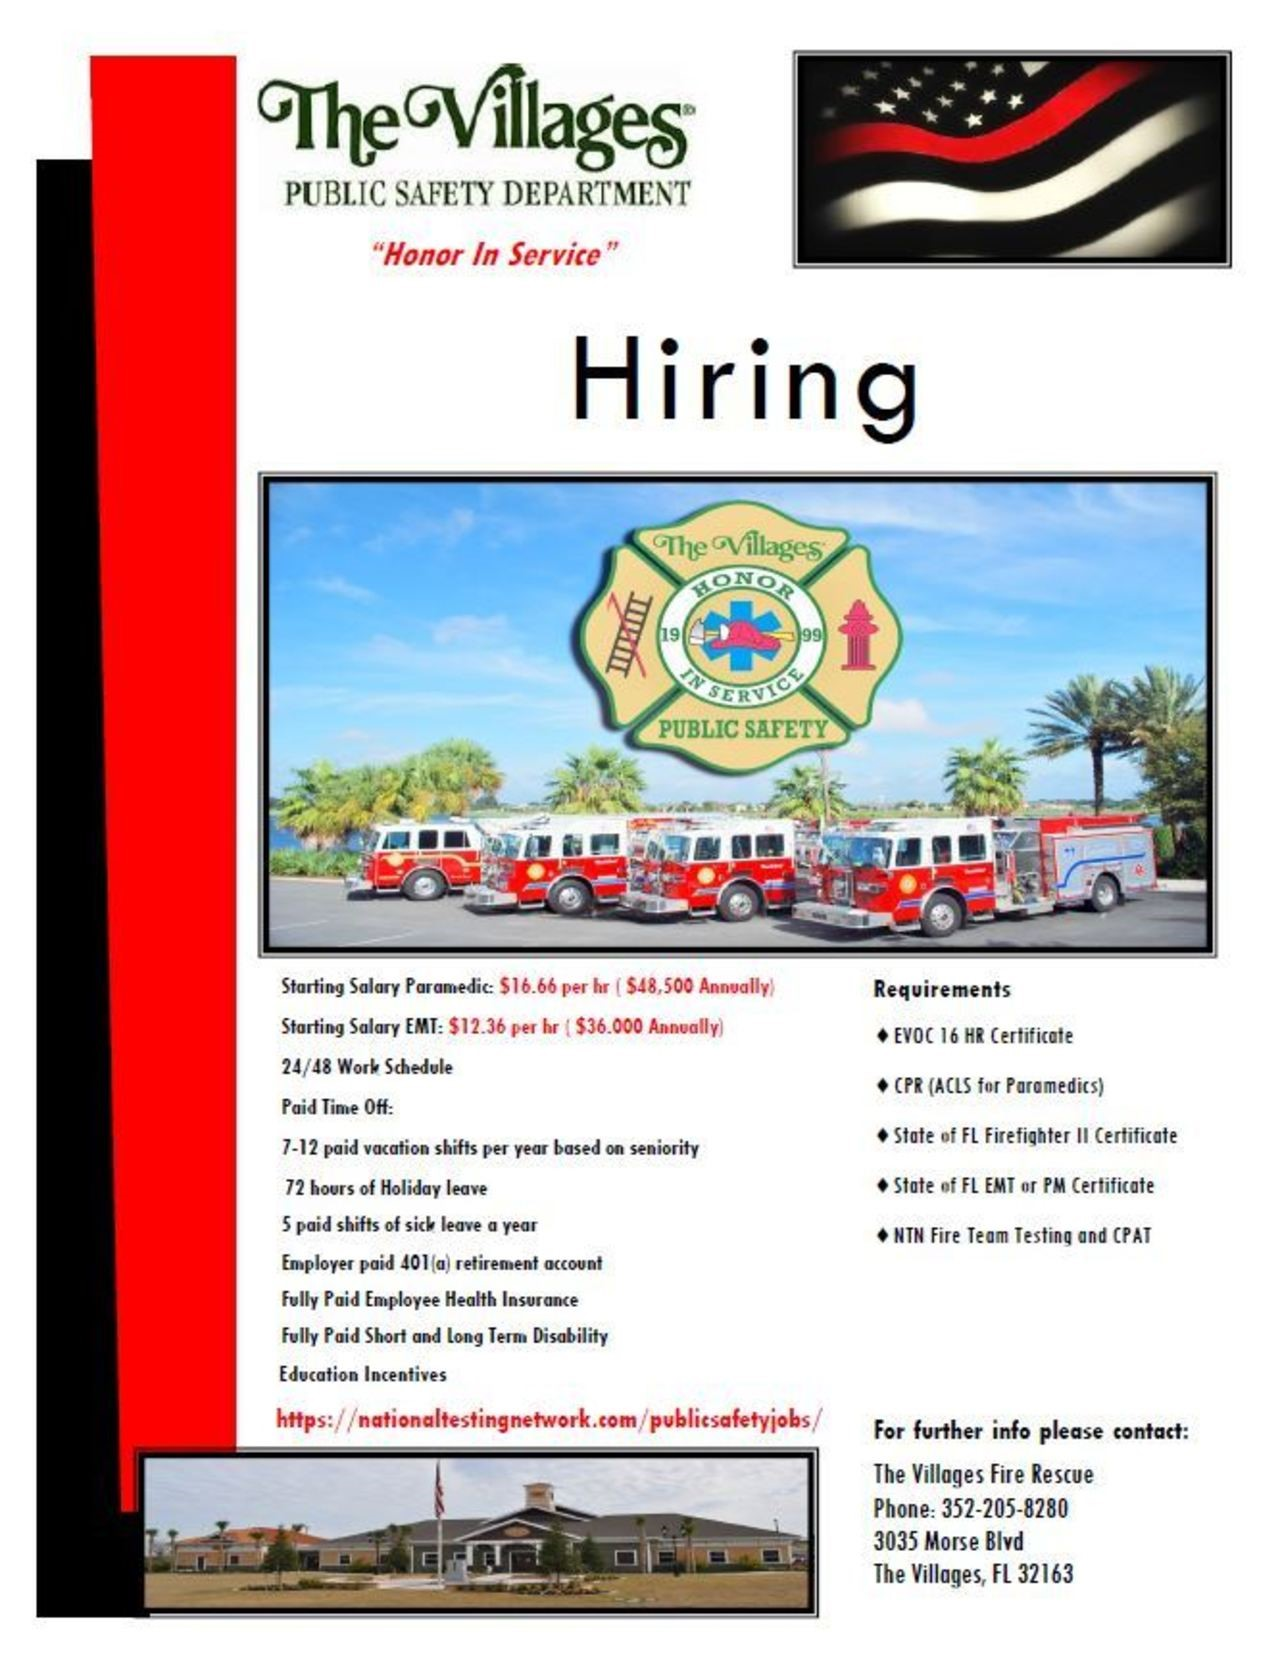 The Villages Hiring